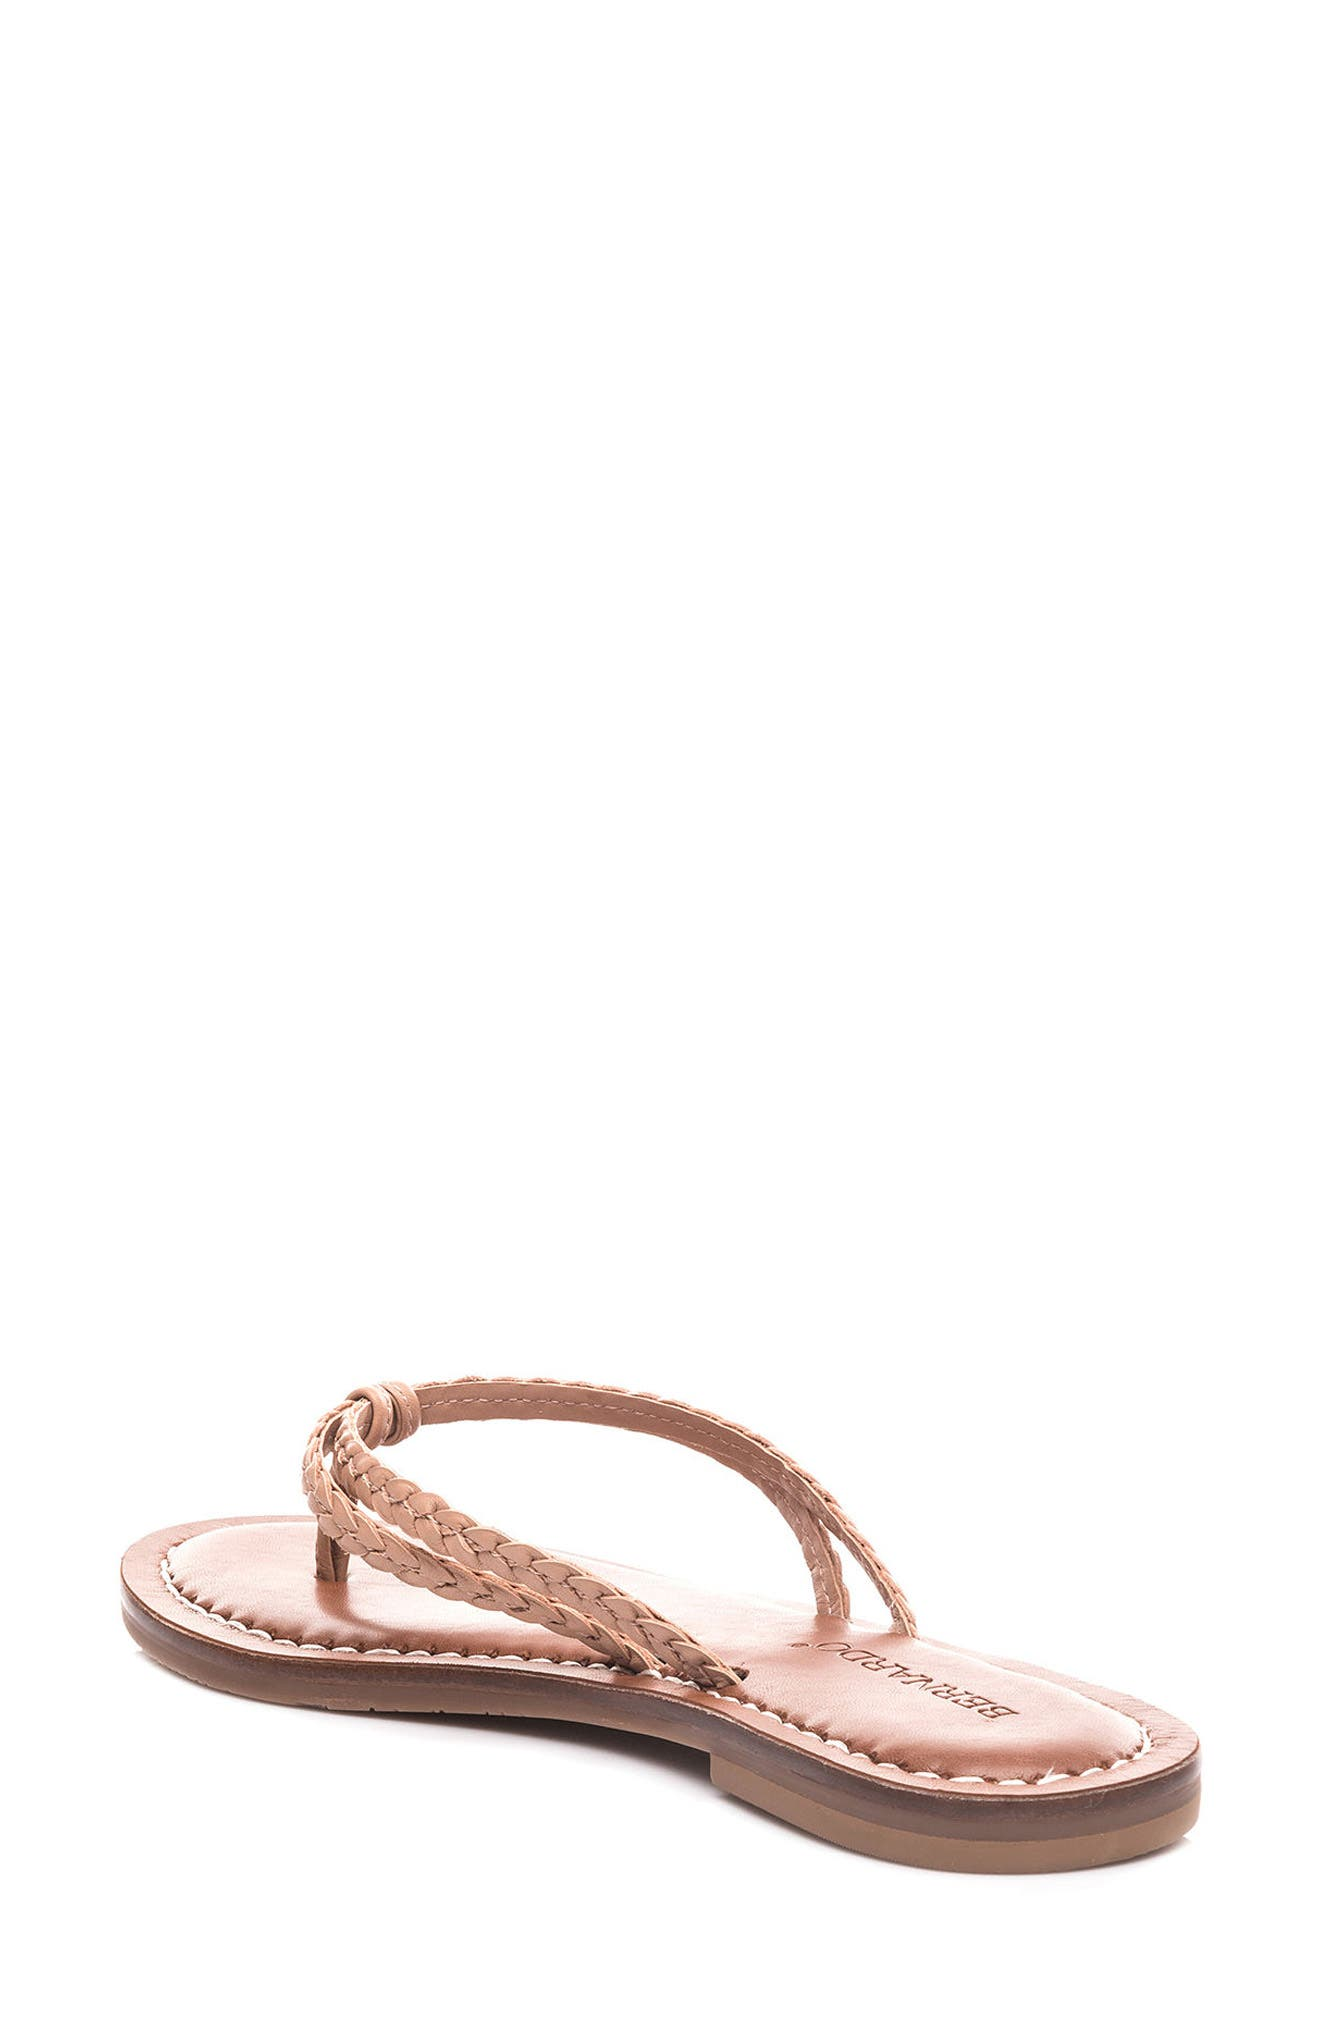 Bernardo Greta Braided Strap Sandal,                             Alternate thumbnail 12, color,